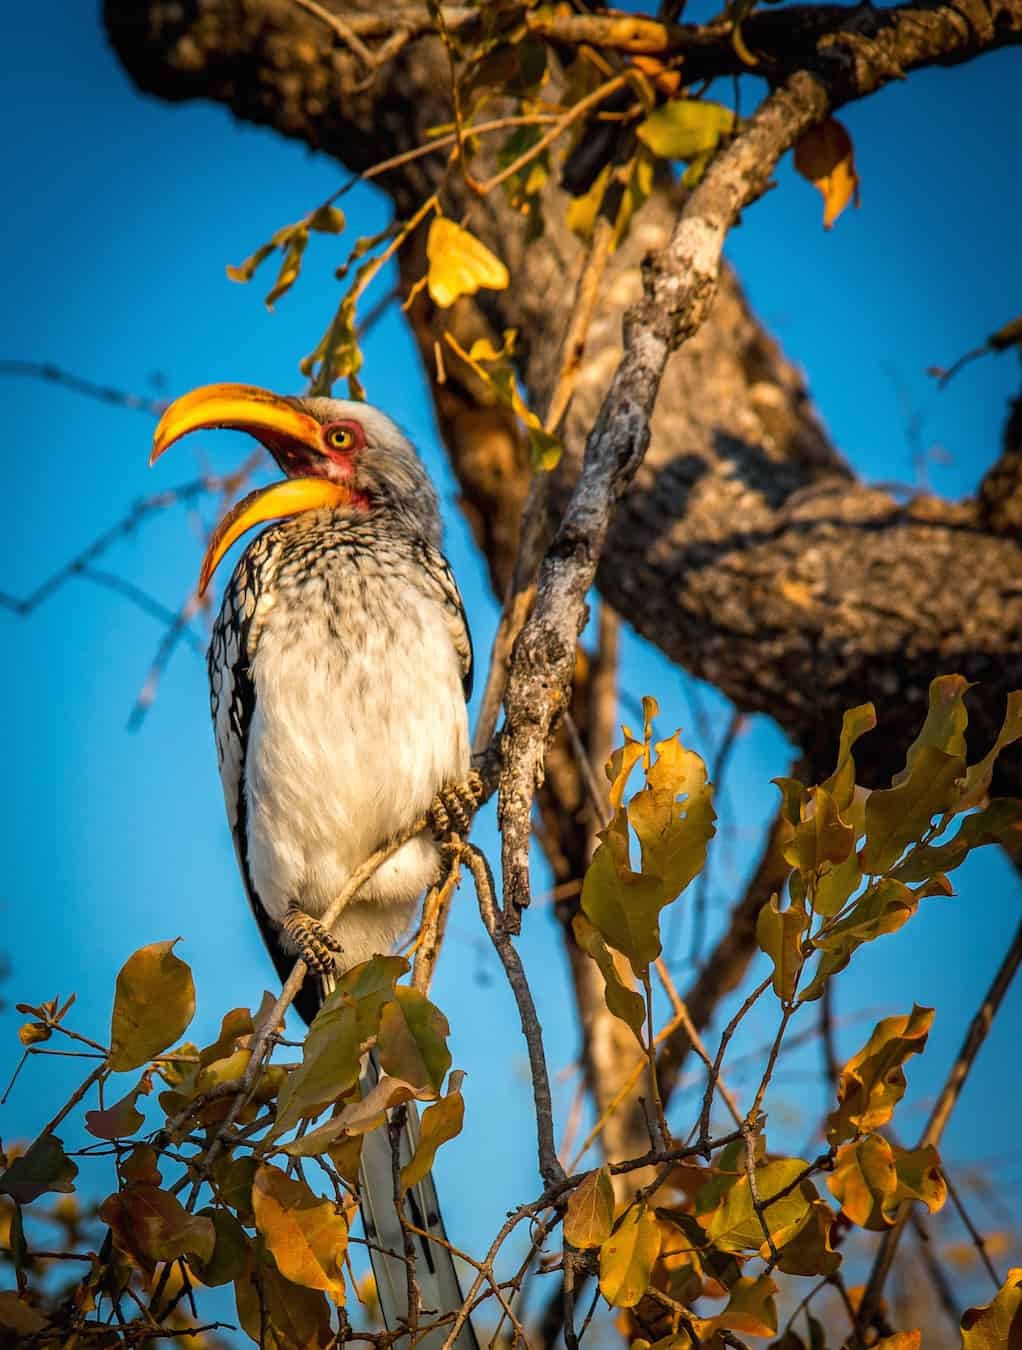 Southern Yellow Billed Hornbill in Kruger National Park